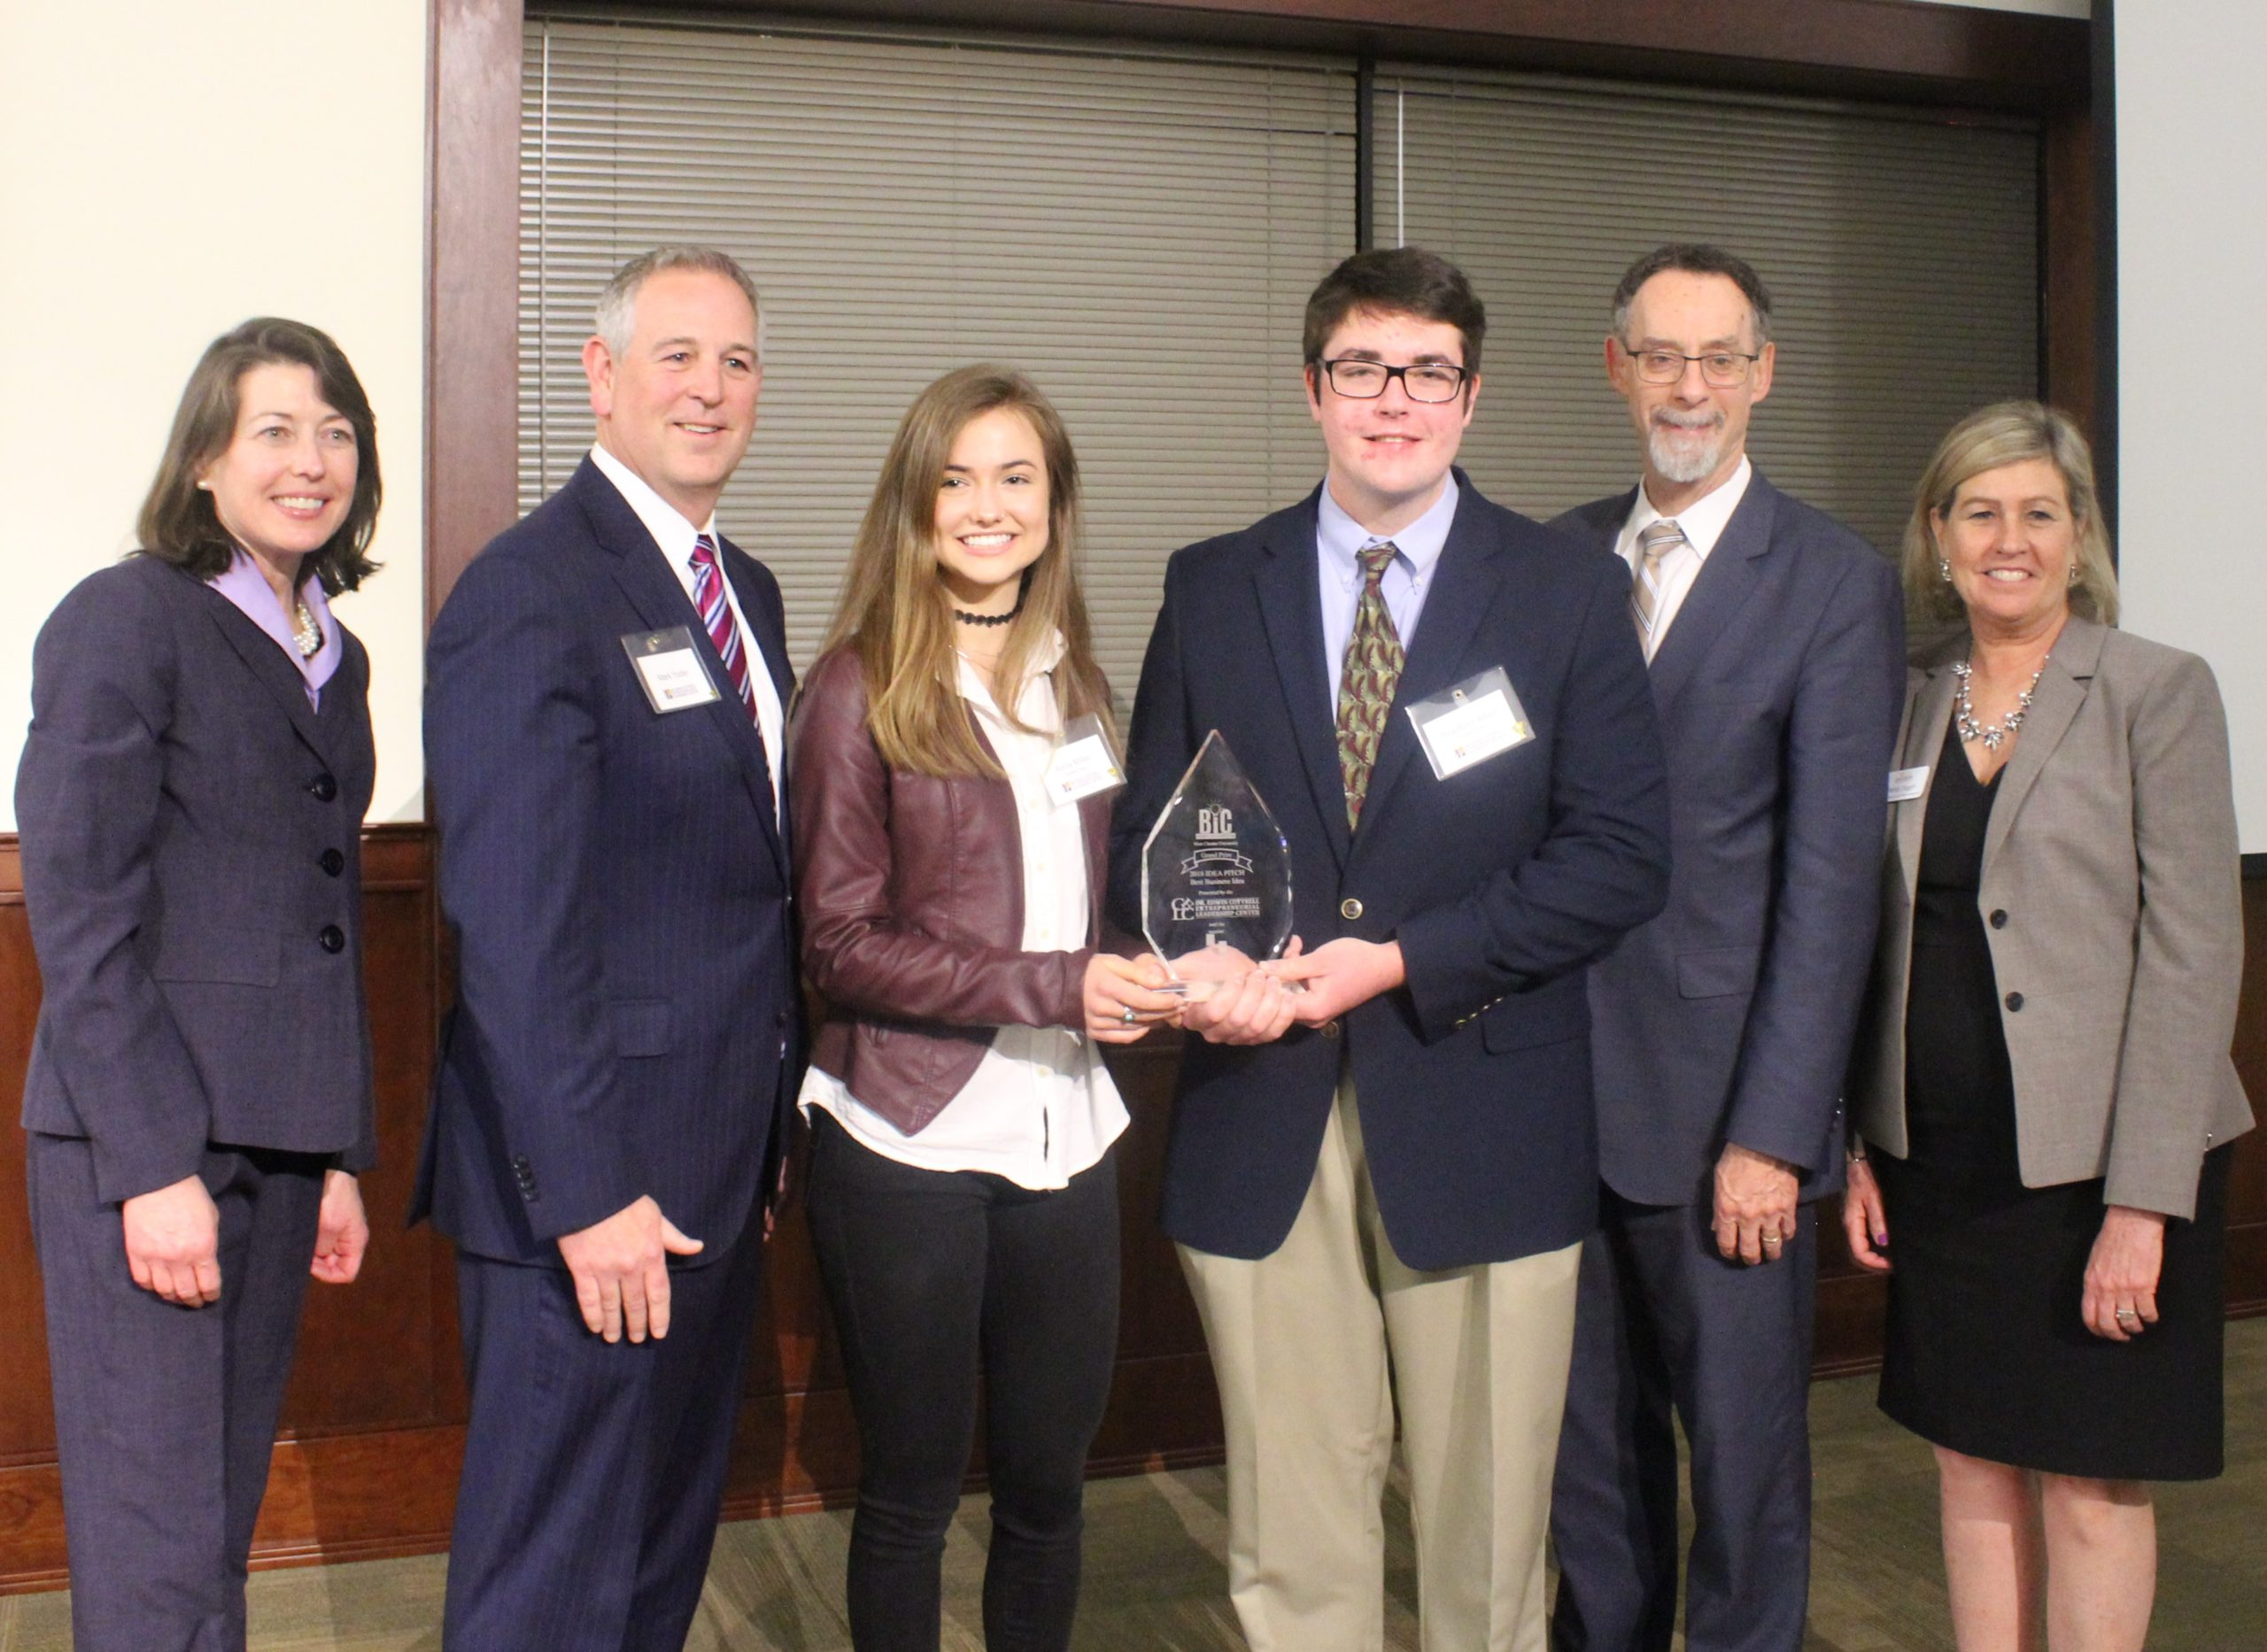 Winners of Sixth Annual WCU Business Idea Pitch Announced